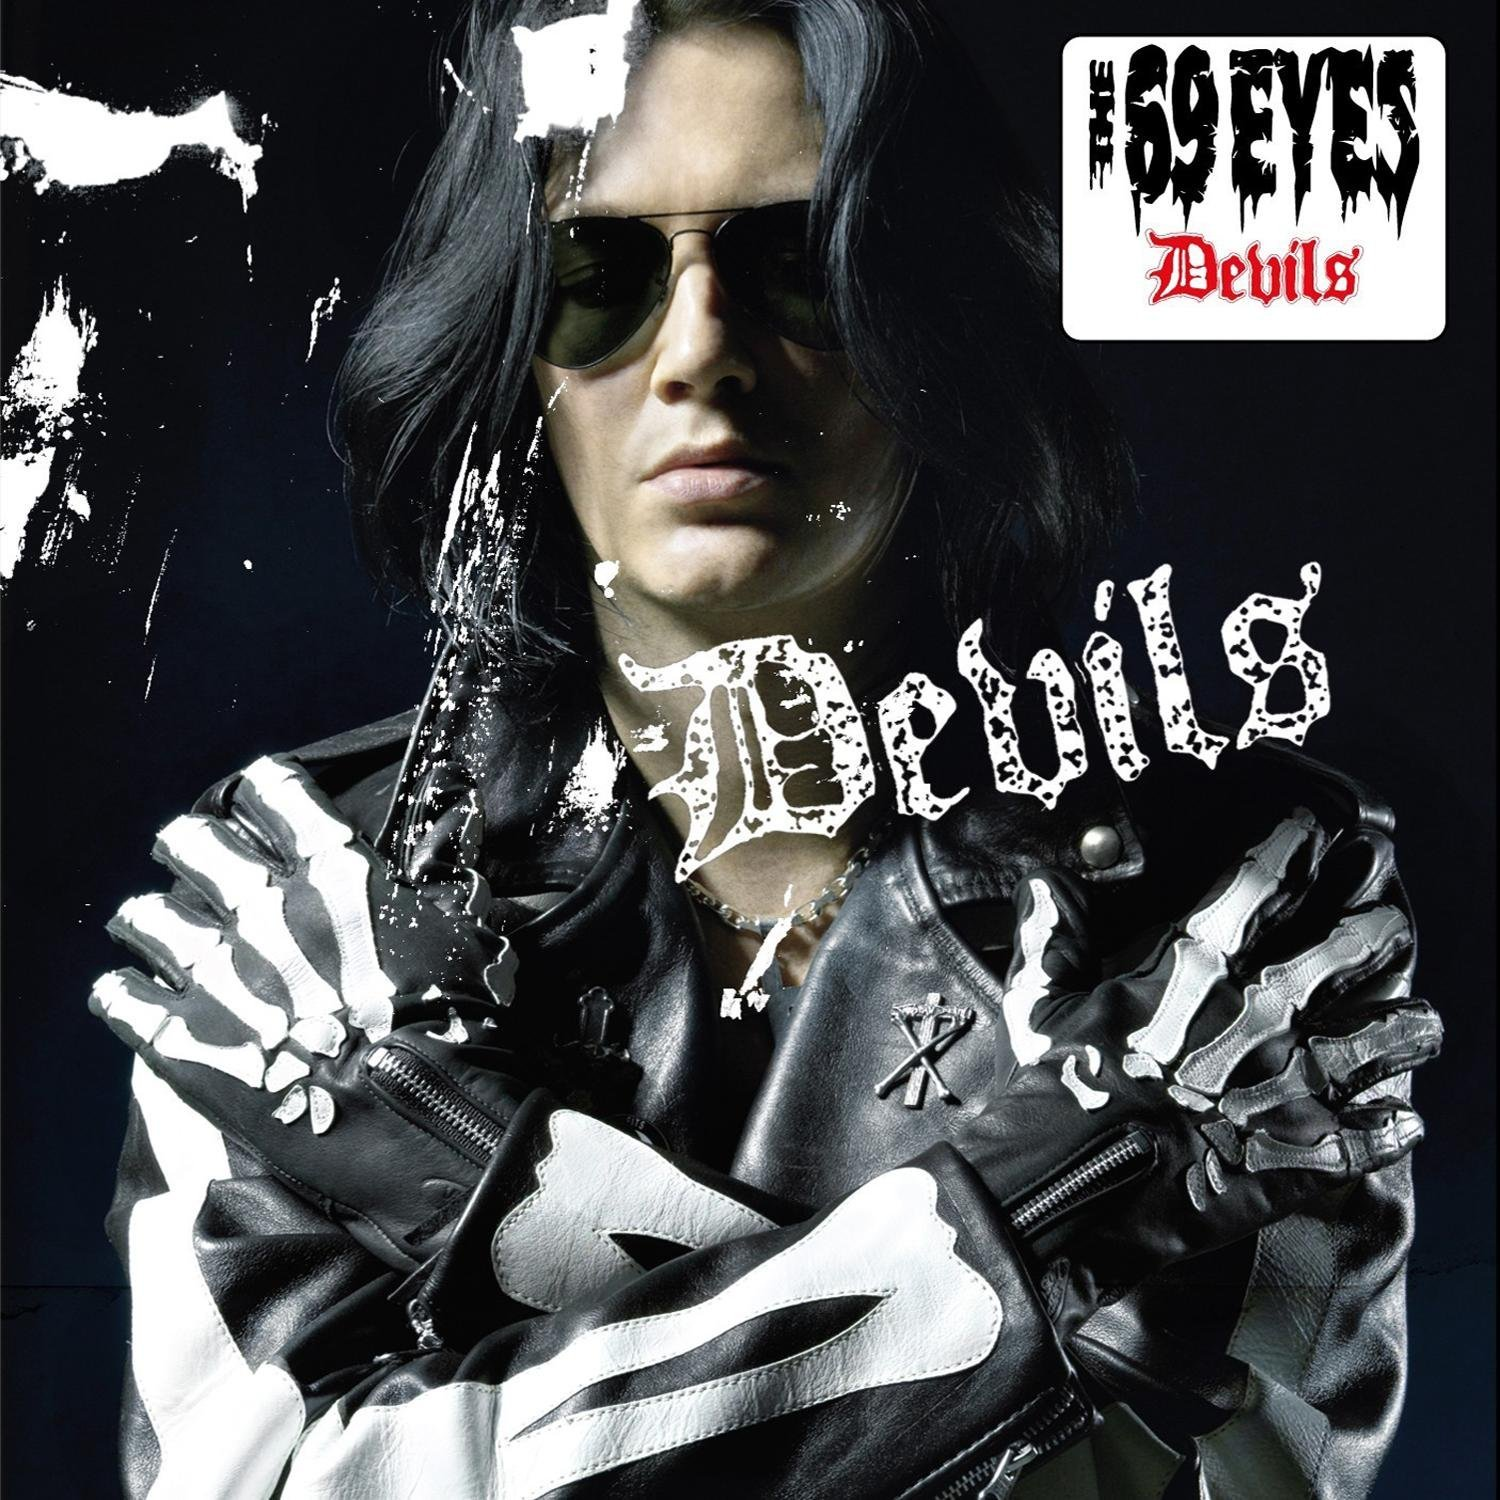 The 69 Eyes: Devils (2004) Book Cover